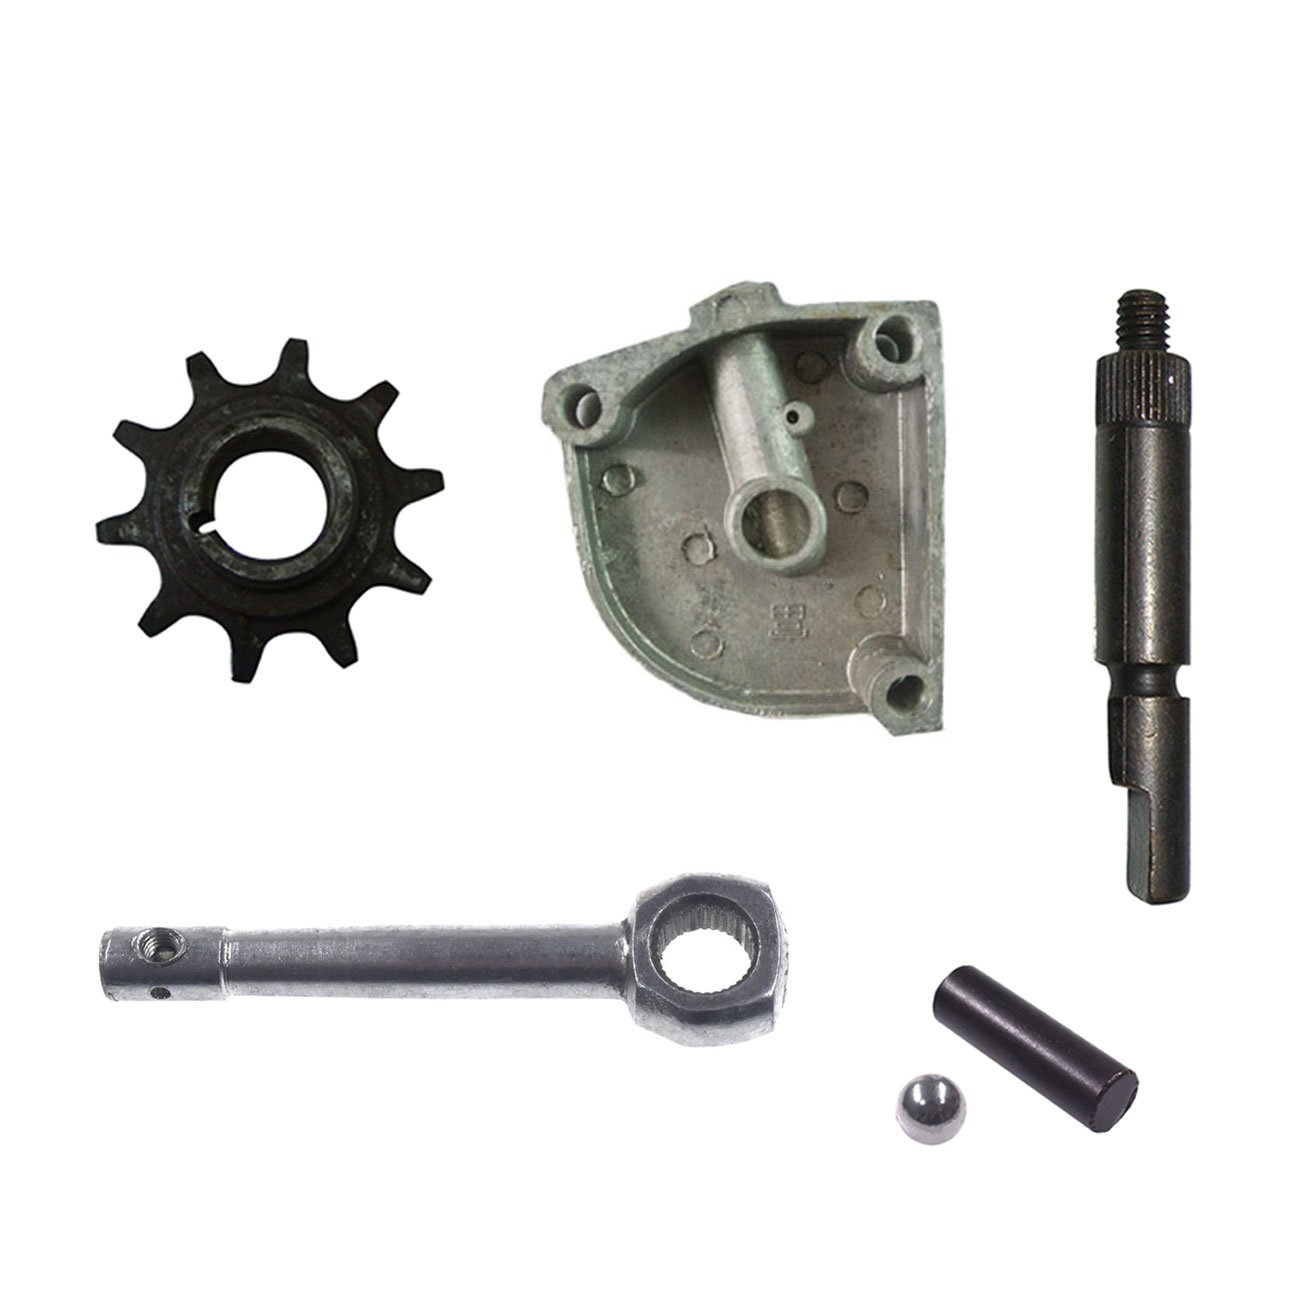 NORTHTIGER 3 Holes Clutch Cover Clutch Arm Lever 10Tooth Drive Sprocket for Motorized Bike